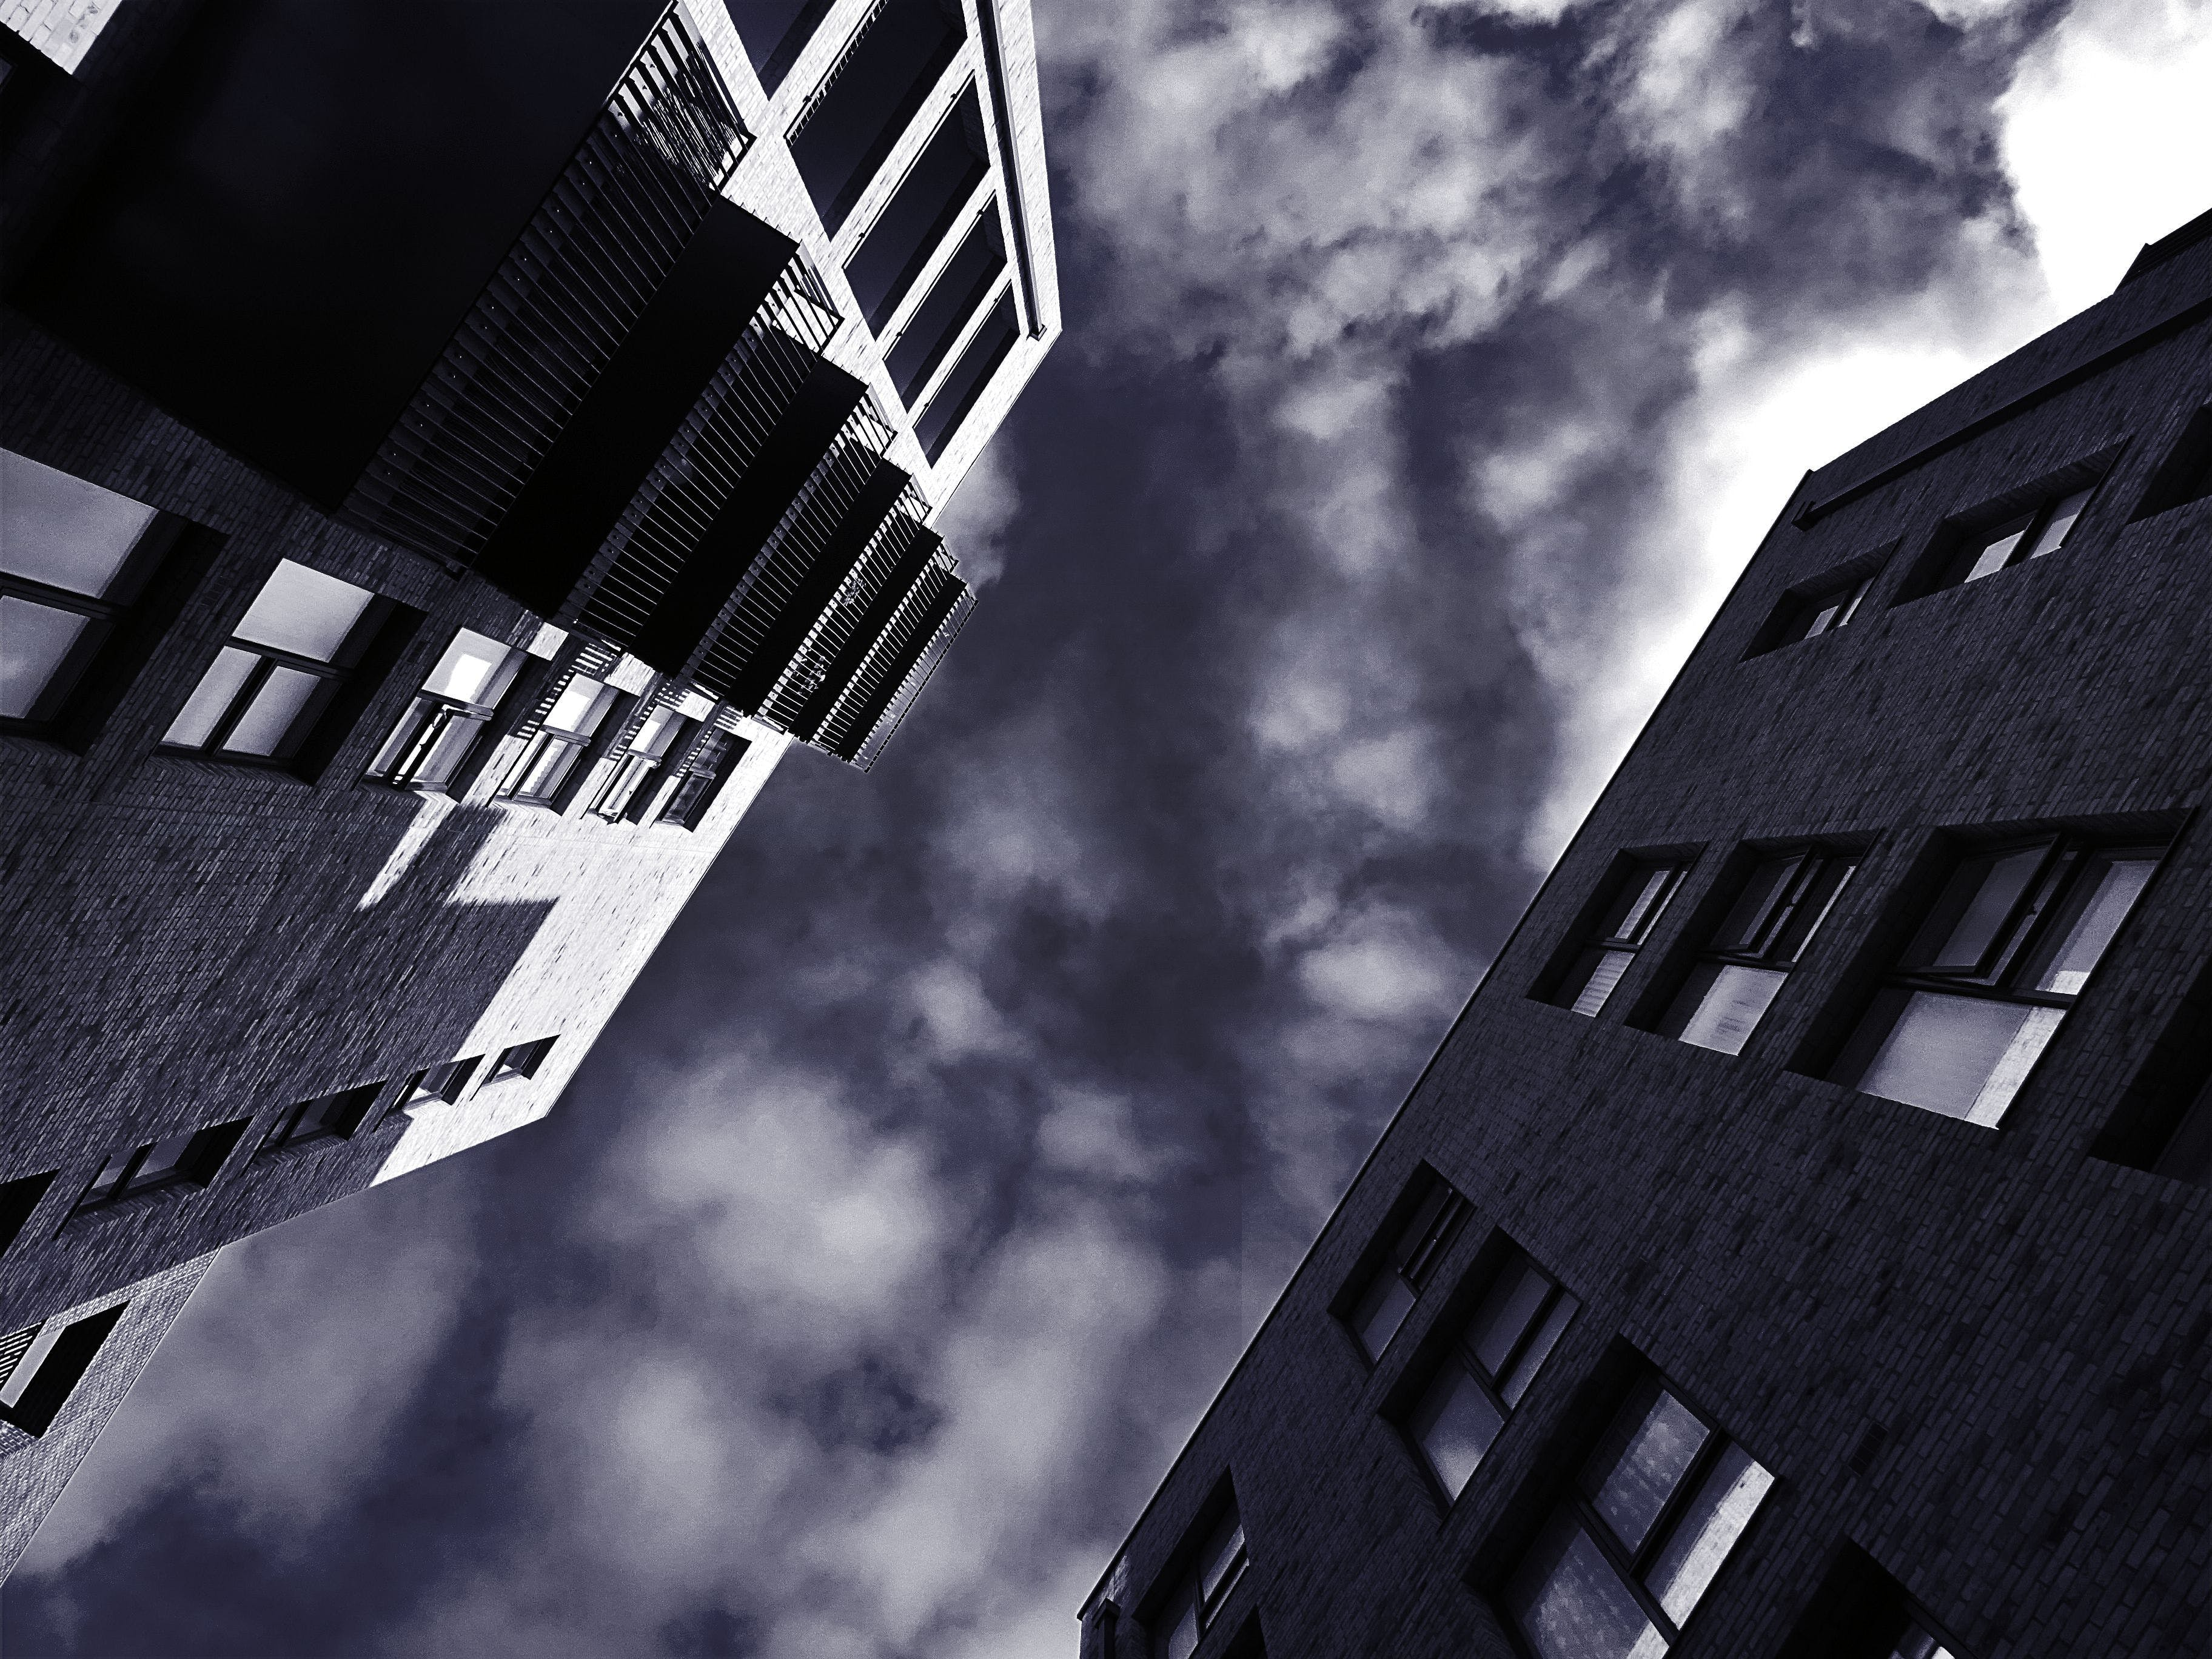 architecture, balconies, black and white